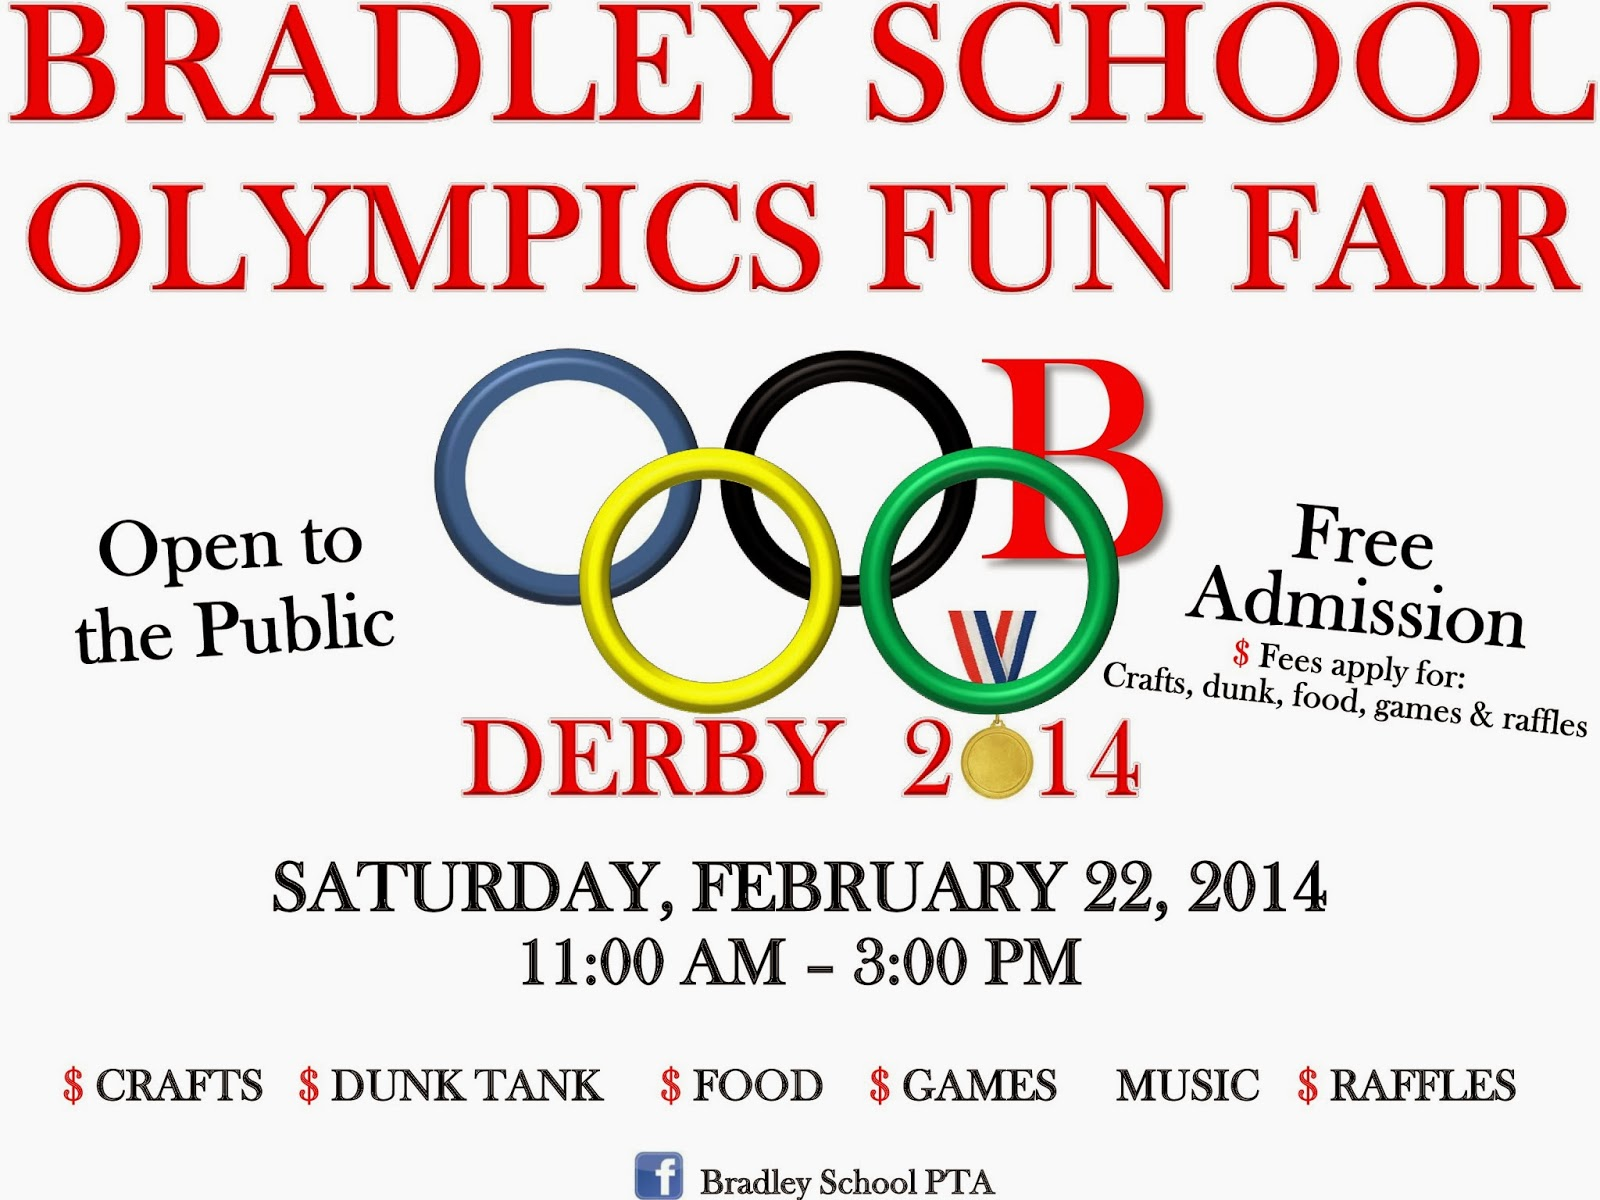 View from the valley january 2014 bradley school in derby to host fun fair malvernweather Choice Image